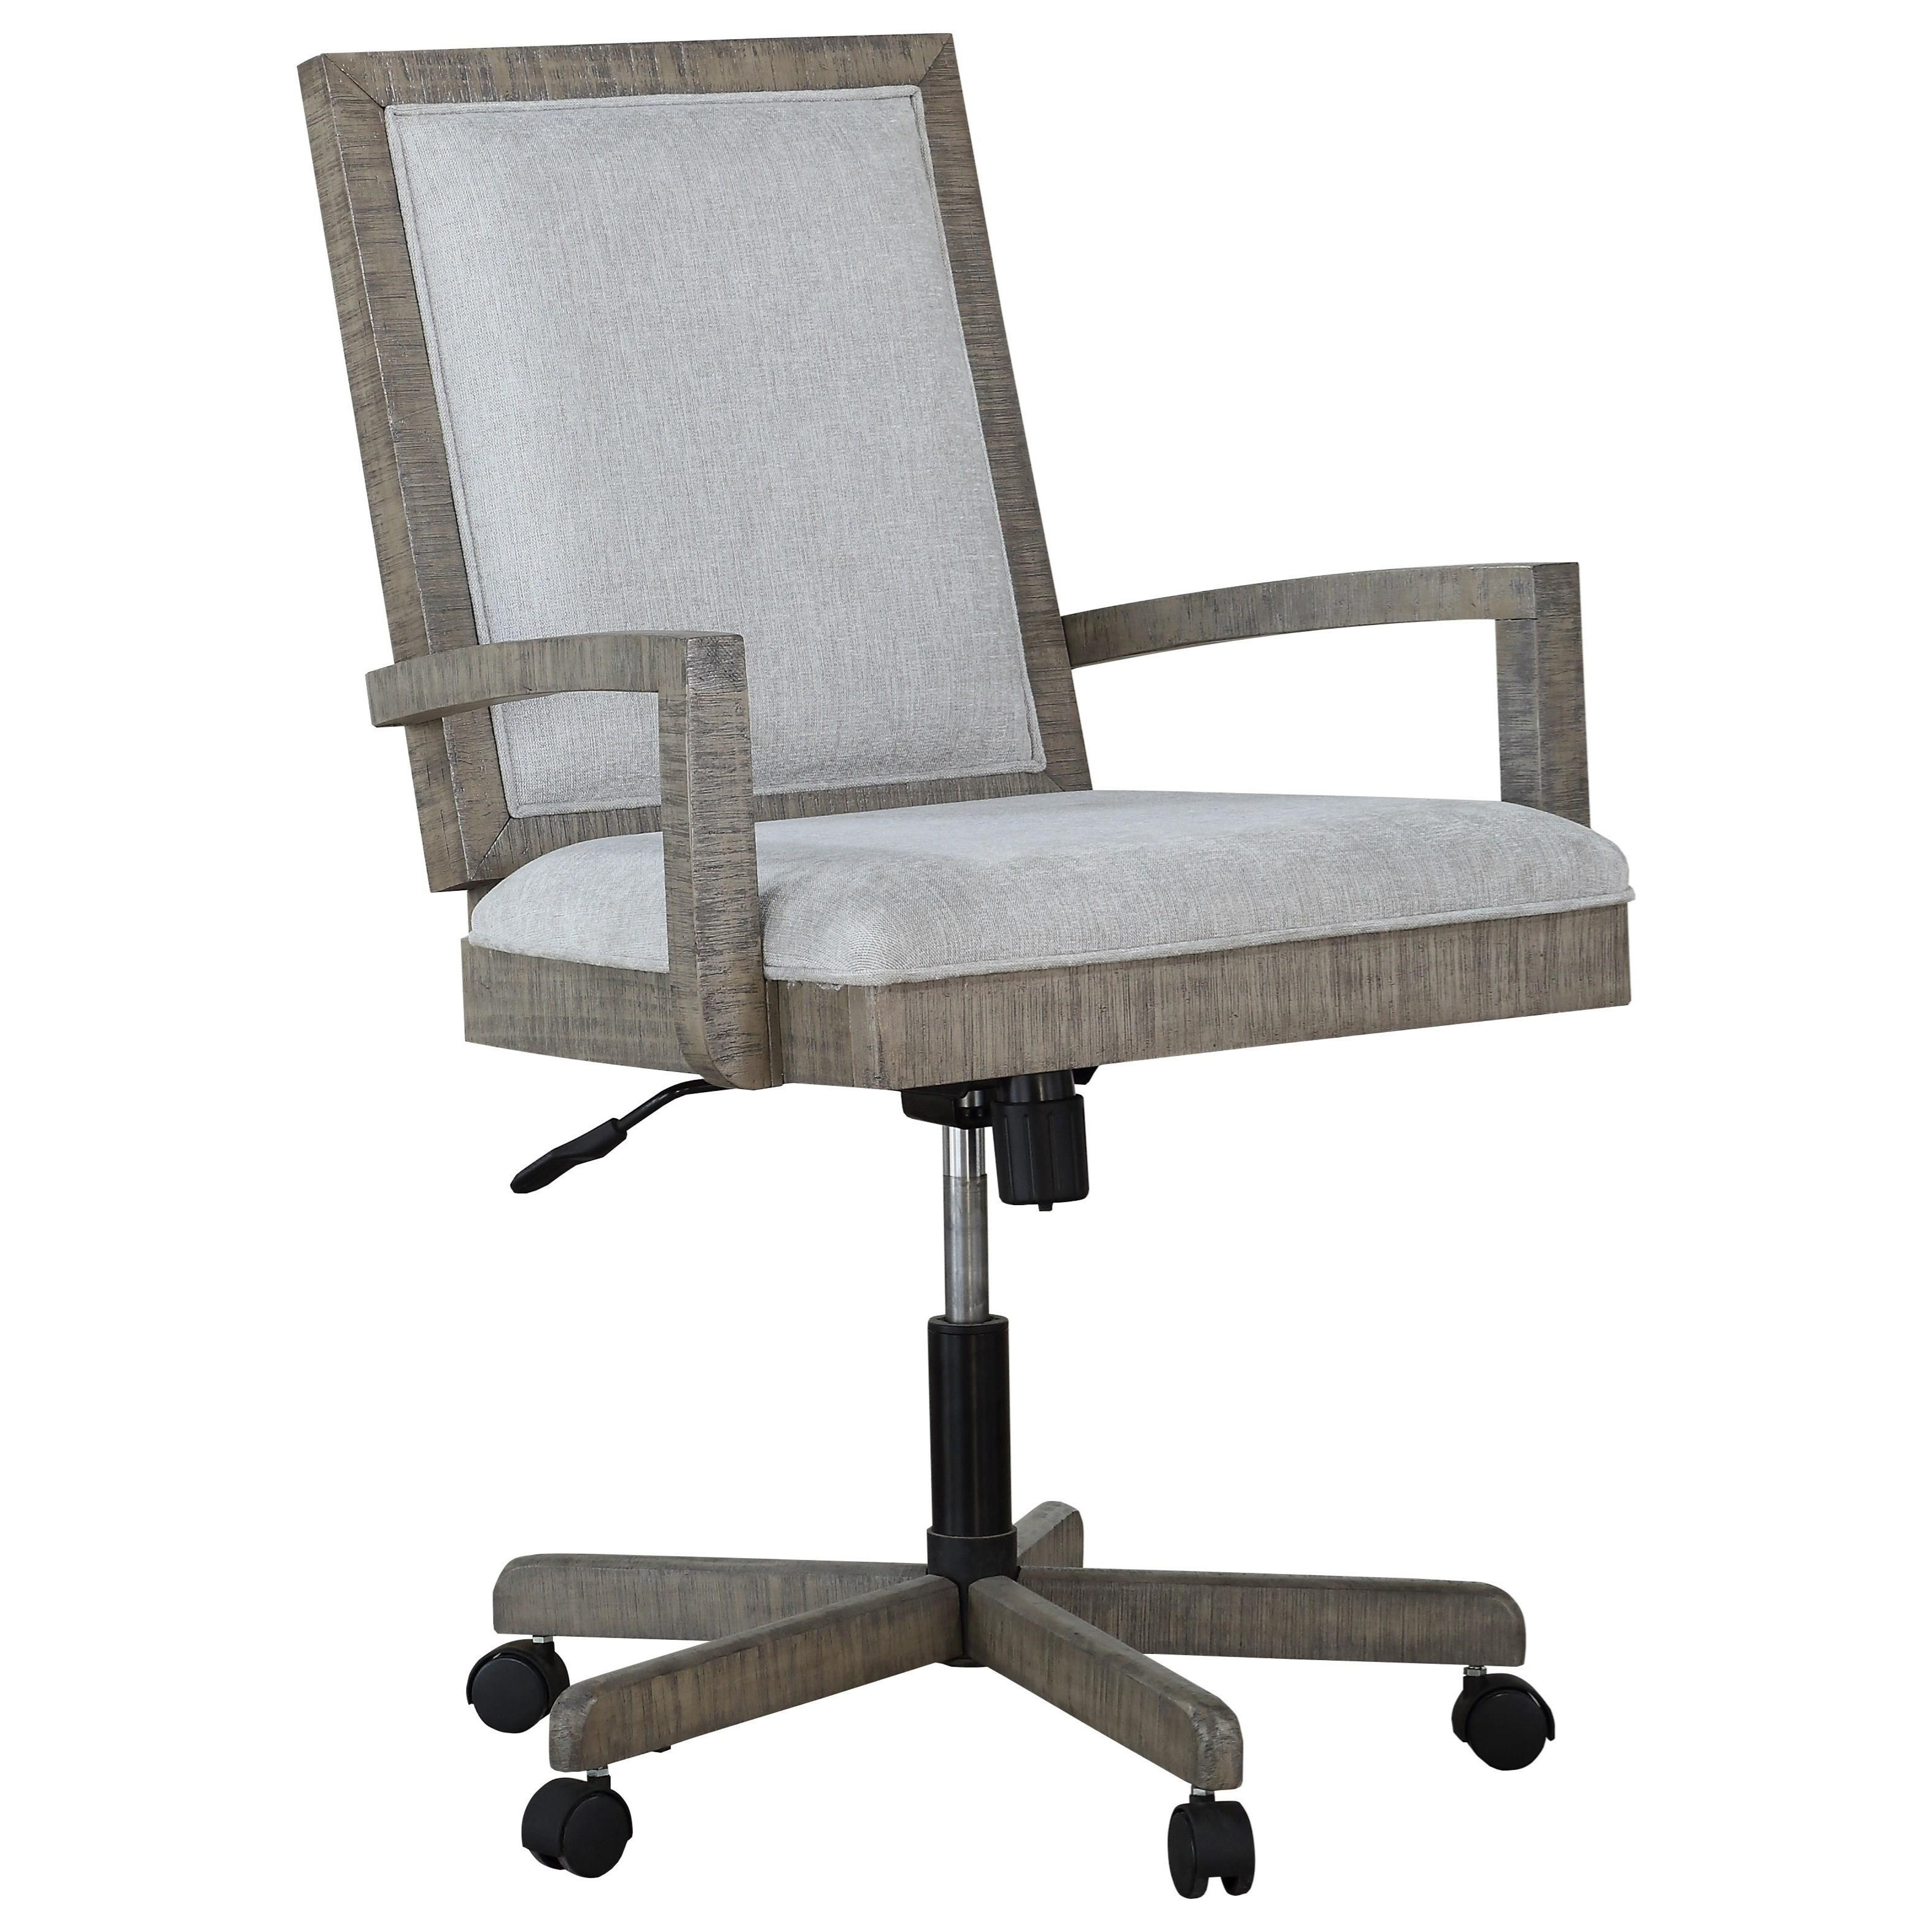 Artesia Executive Office Chair by Acme Furniture at Carolina Direct